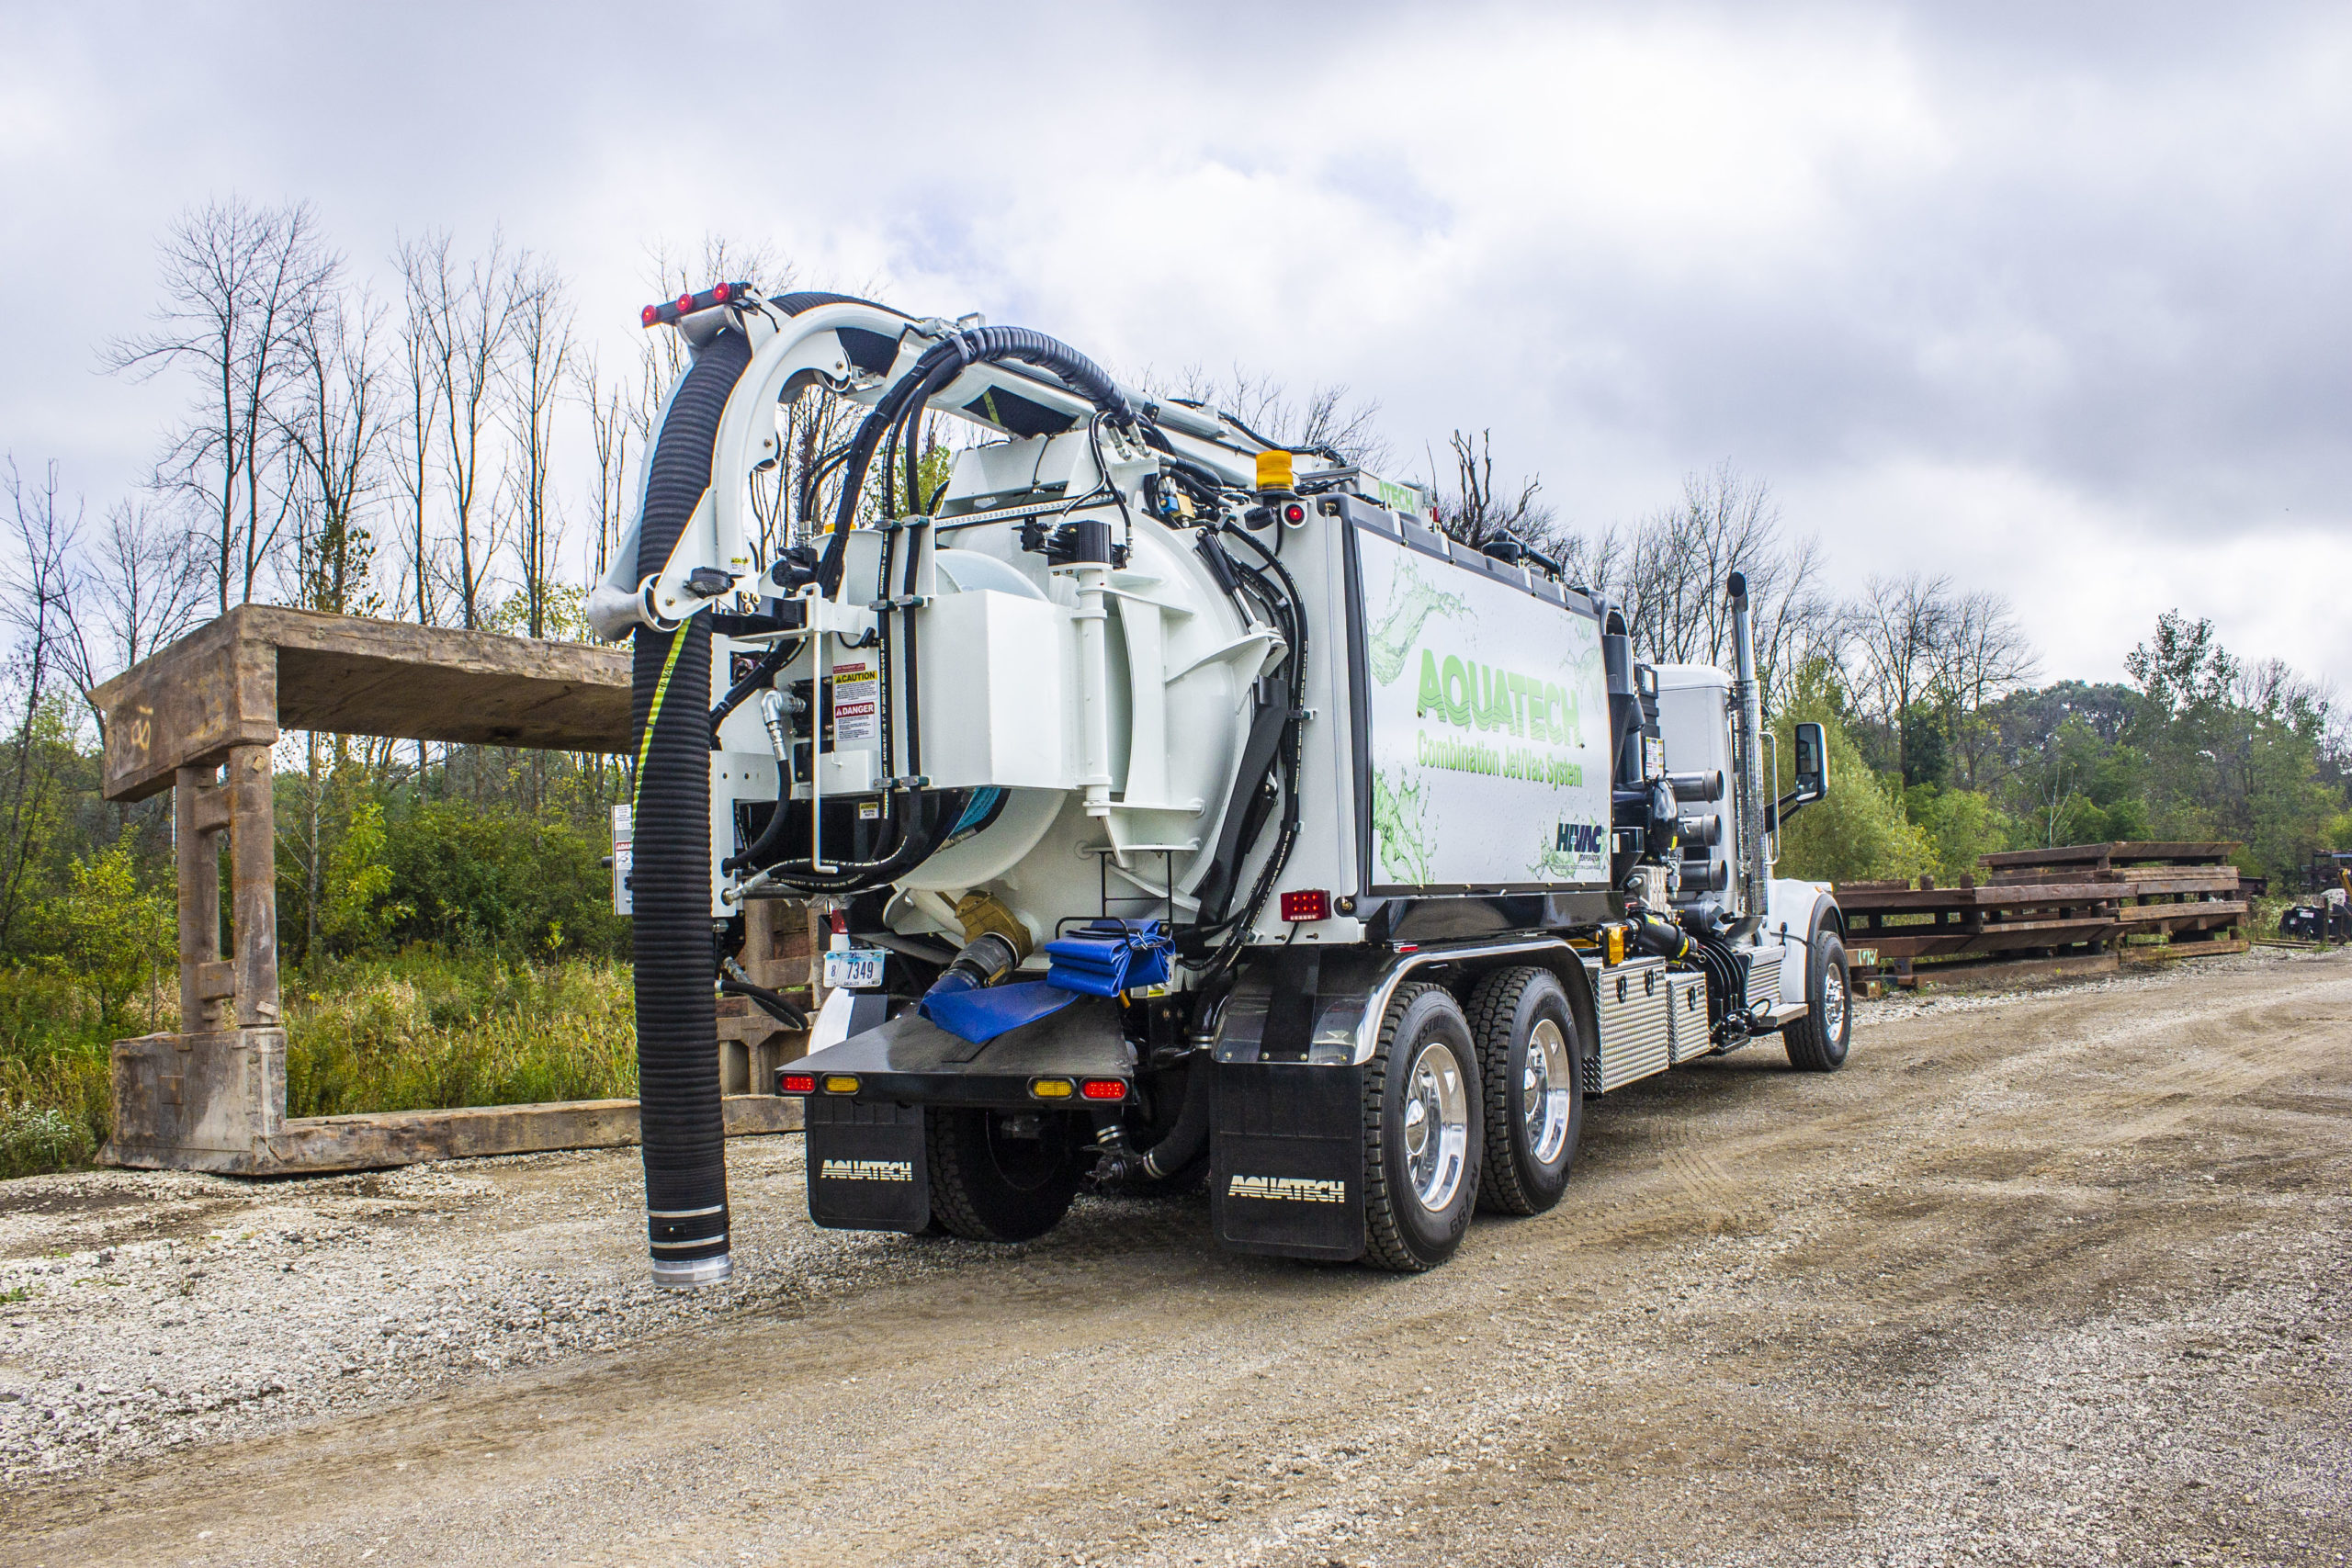 Aquatech B-10 combo sewer cleaner truck